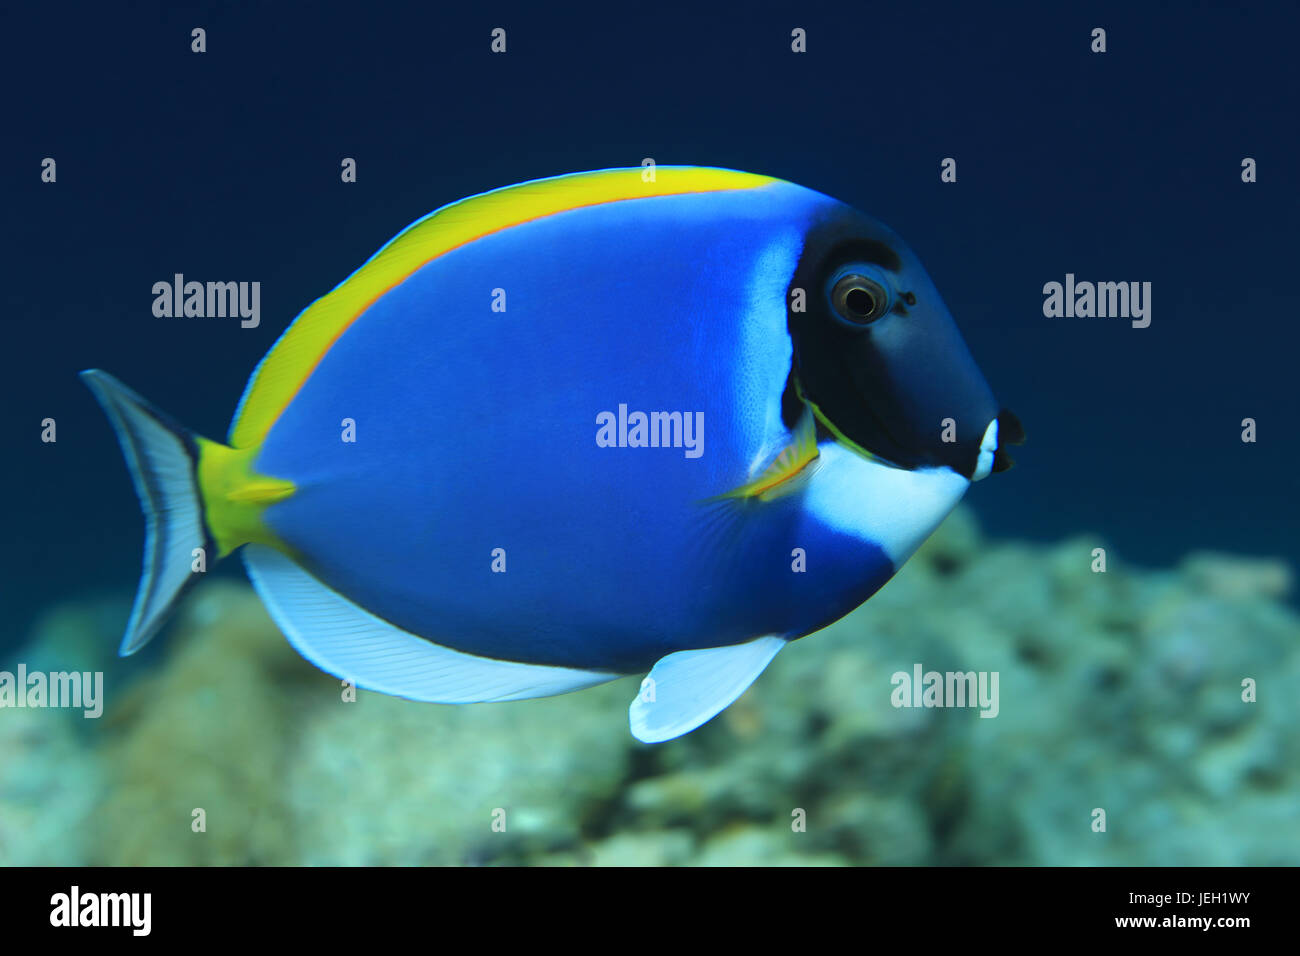 Powderblue surgeonfish (Acanthurus leucosternon) underwater in the indian ocean - Stock Image